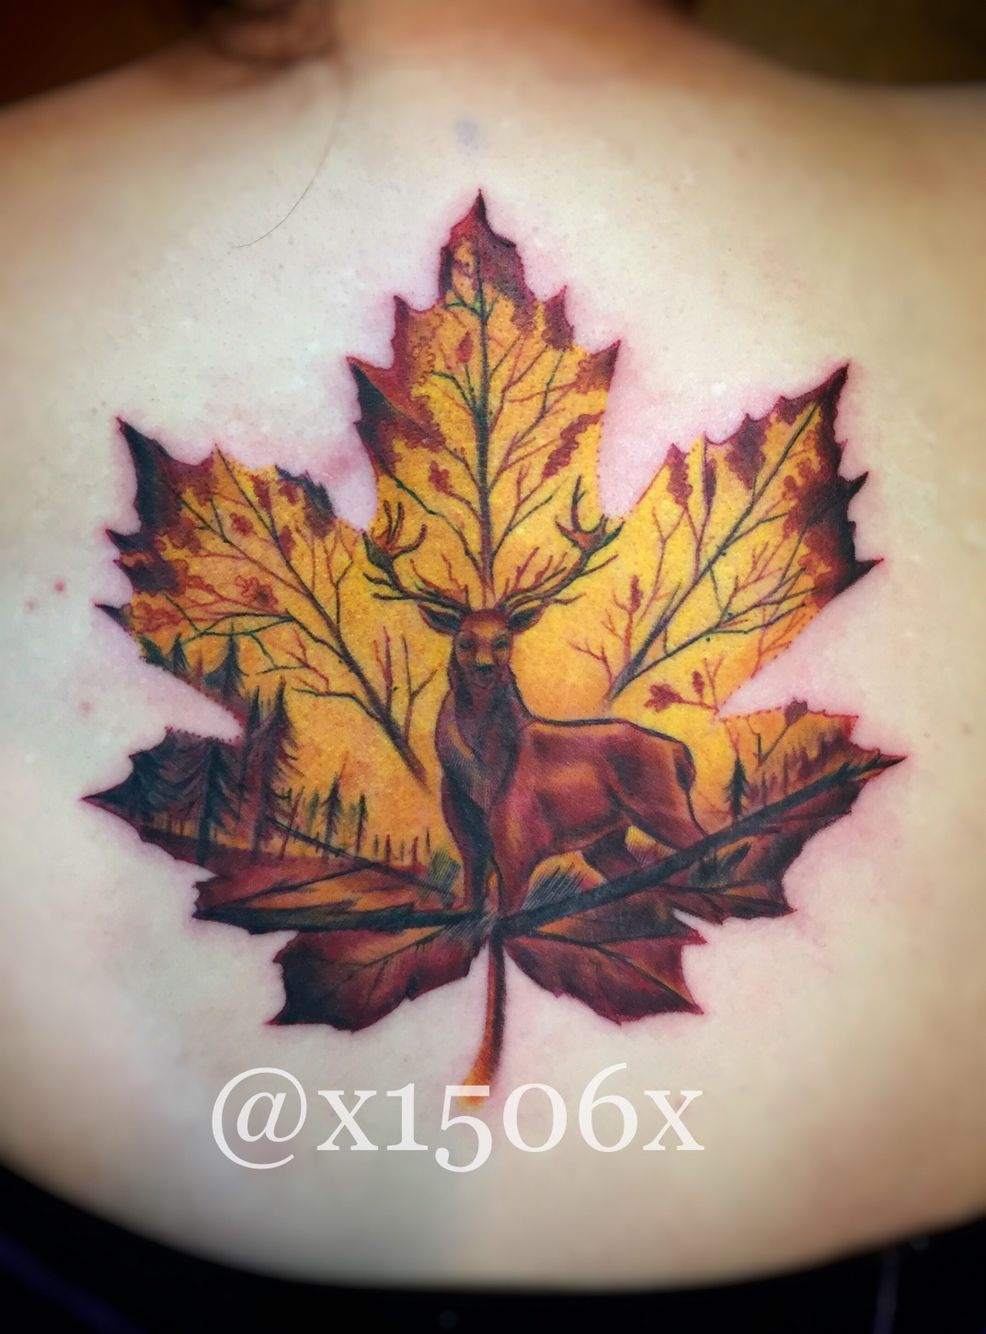 Happy Canada Day Fun Piece I Got To Do My Way Yesterday Based Off An Eagle And Rabbits In Maple Leaf Tattoo That S Tattoos Autumn Tattoo Fall Leaves Tattoo